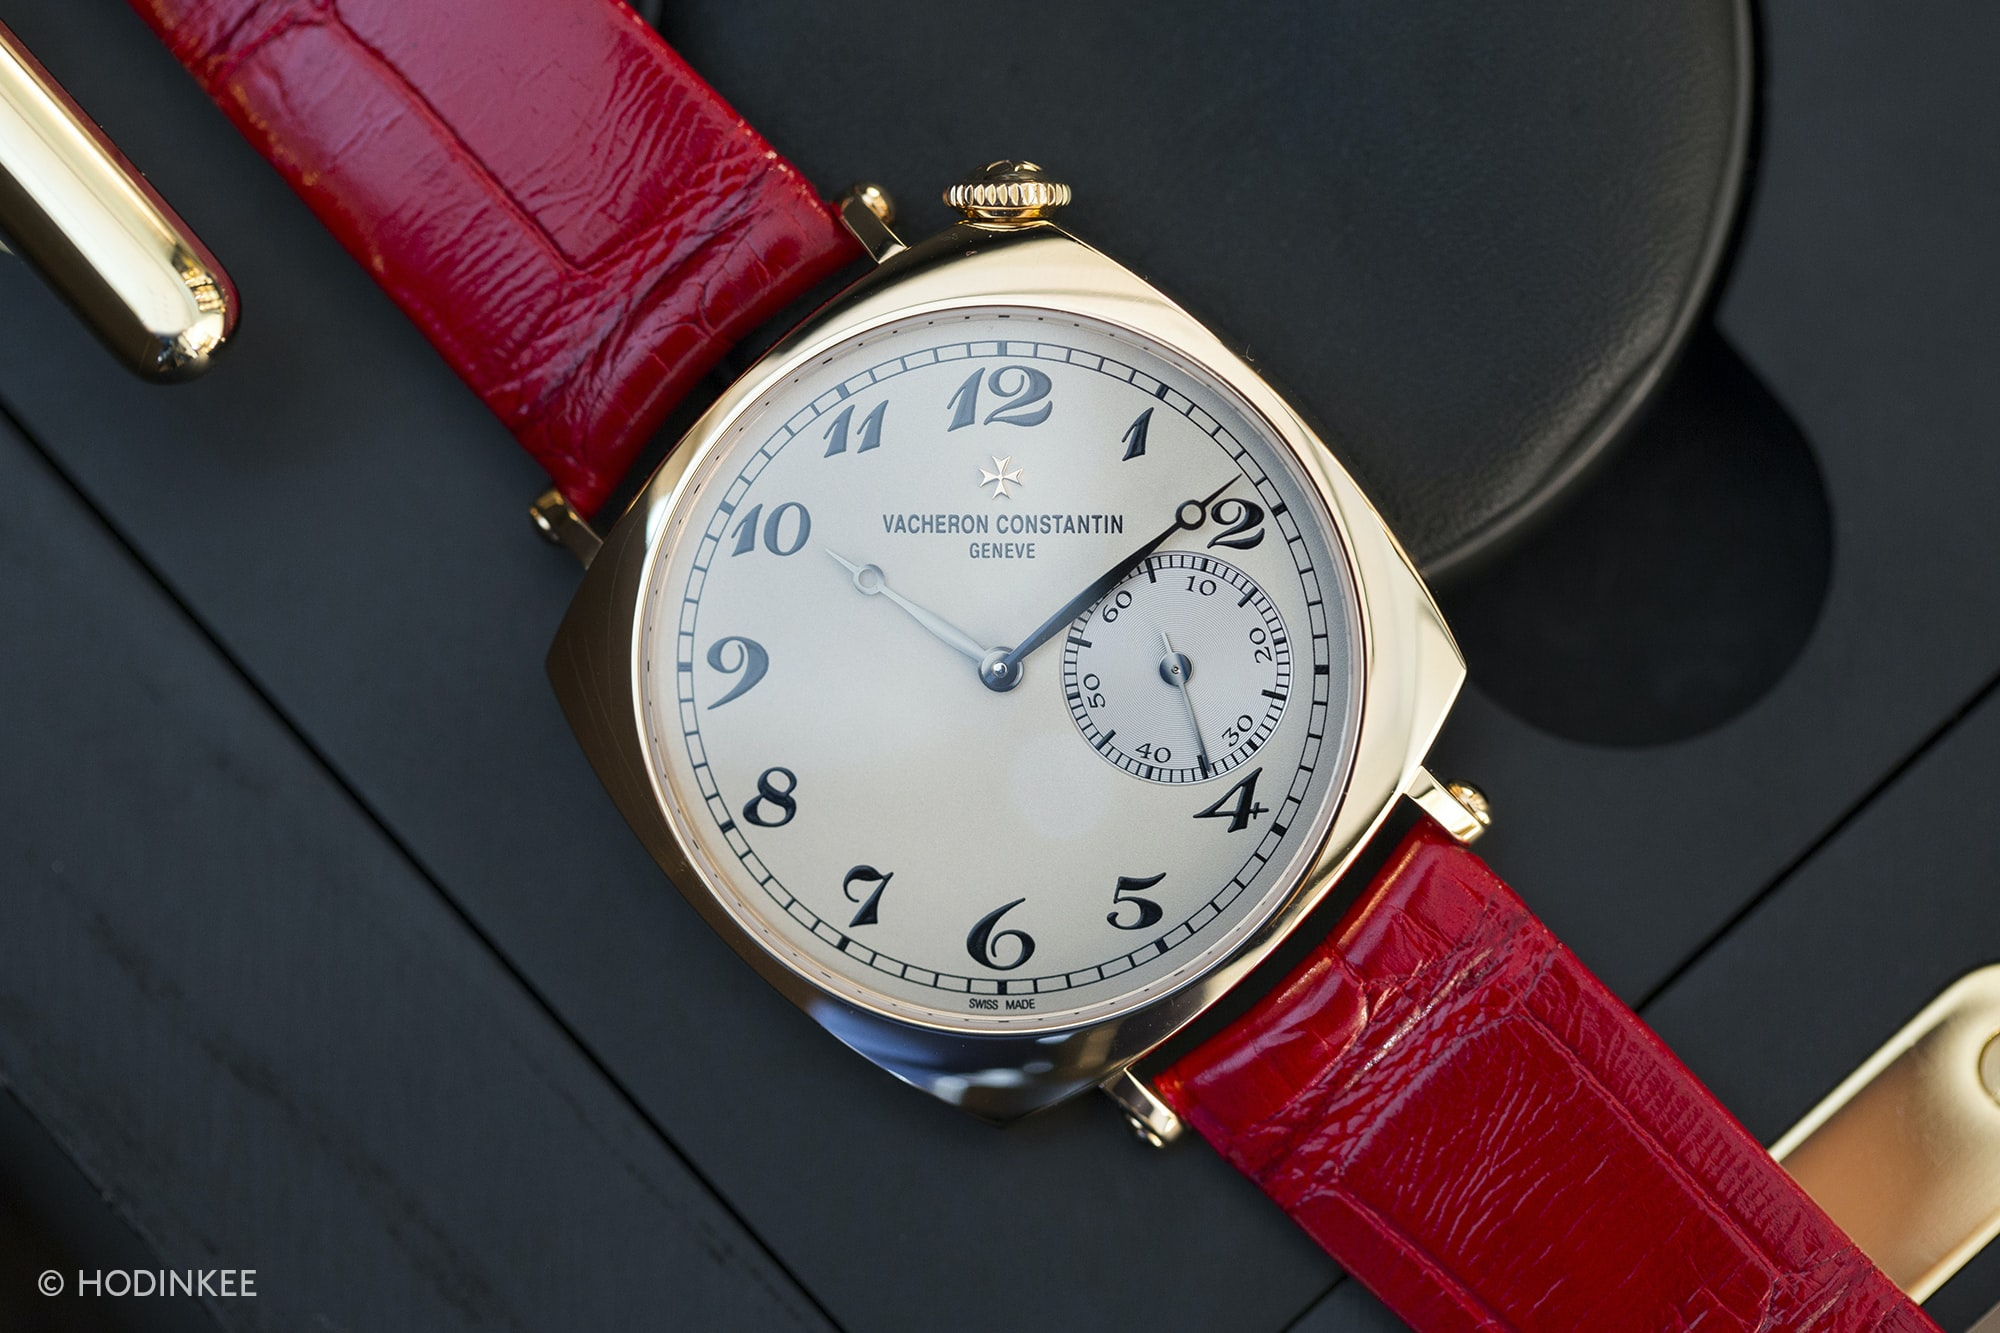 vacheron historiques american 1921 small model  Introducing: The New Vacheron Constantin Historiques: Triple Calendrier 1942 And 1948, And American 1921 Small (Exclusive Live Pics) 3H0A2951 copy